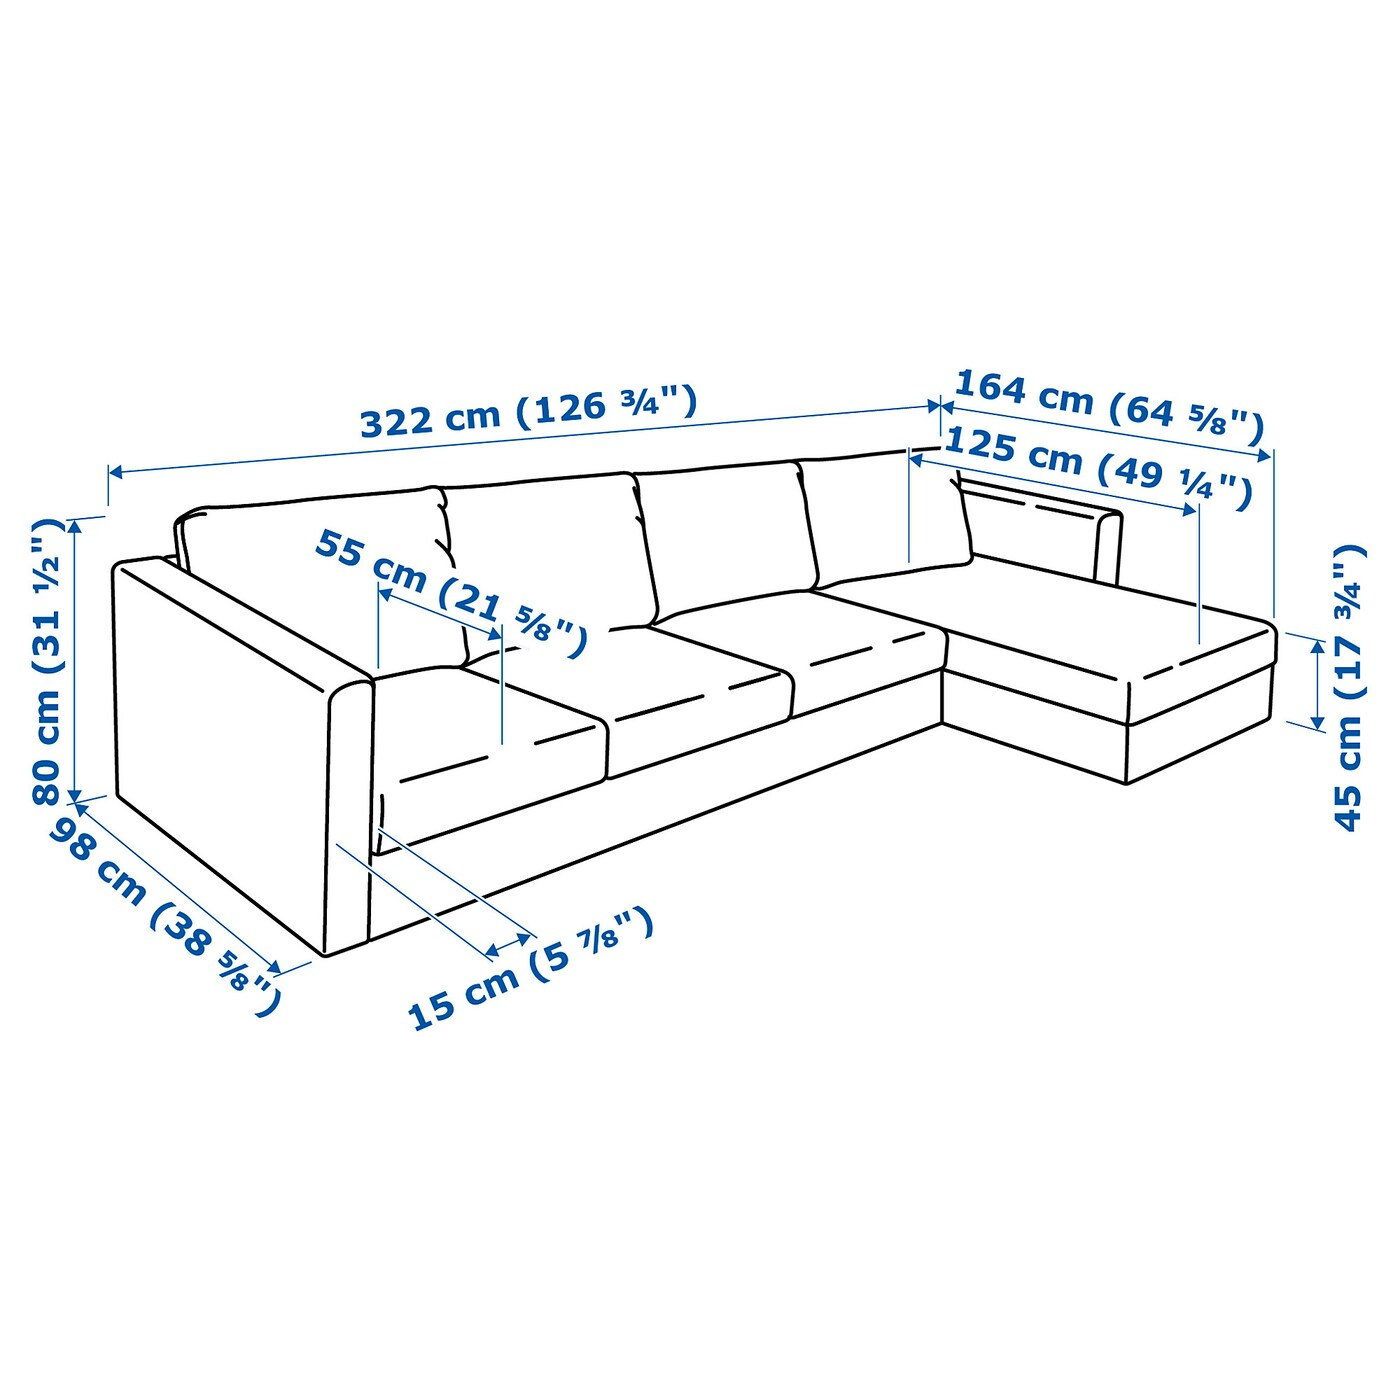 length of 2 seater sofa dimensions savona queen sleeper vimle 4 seat with chaise longue gunnared medium grey ikea the cover is easy to keep clean since it